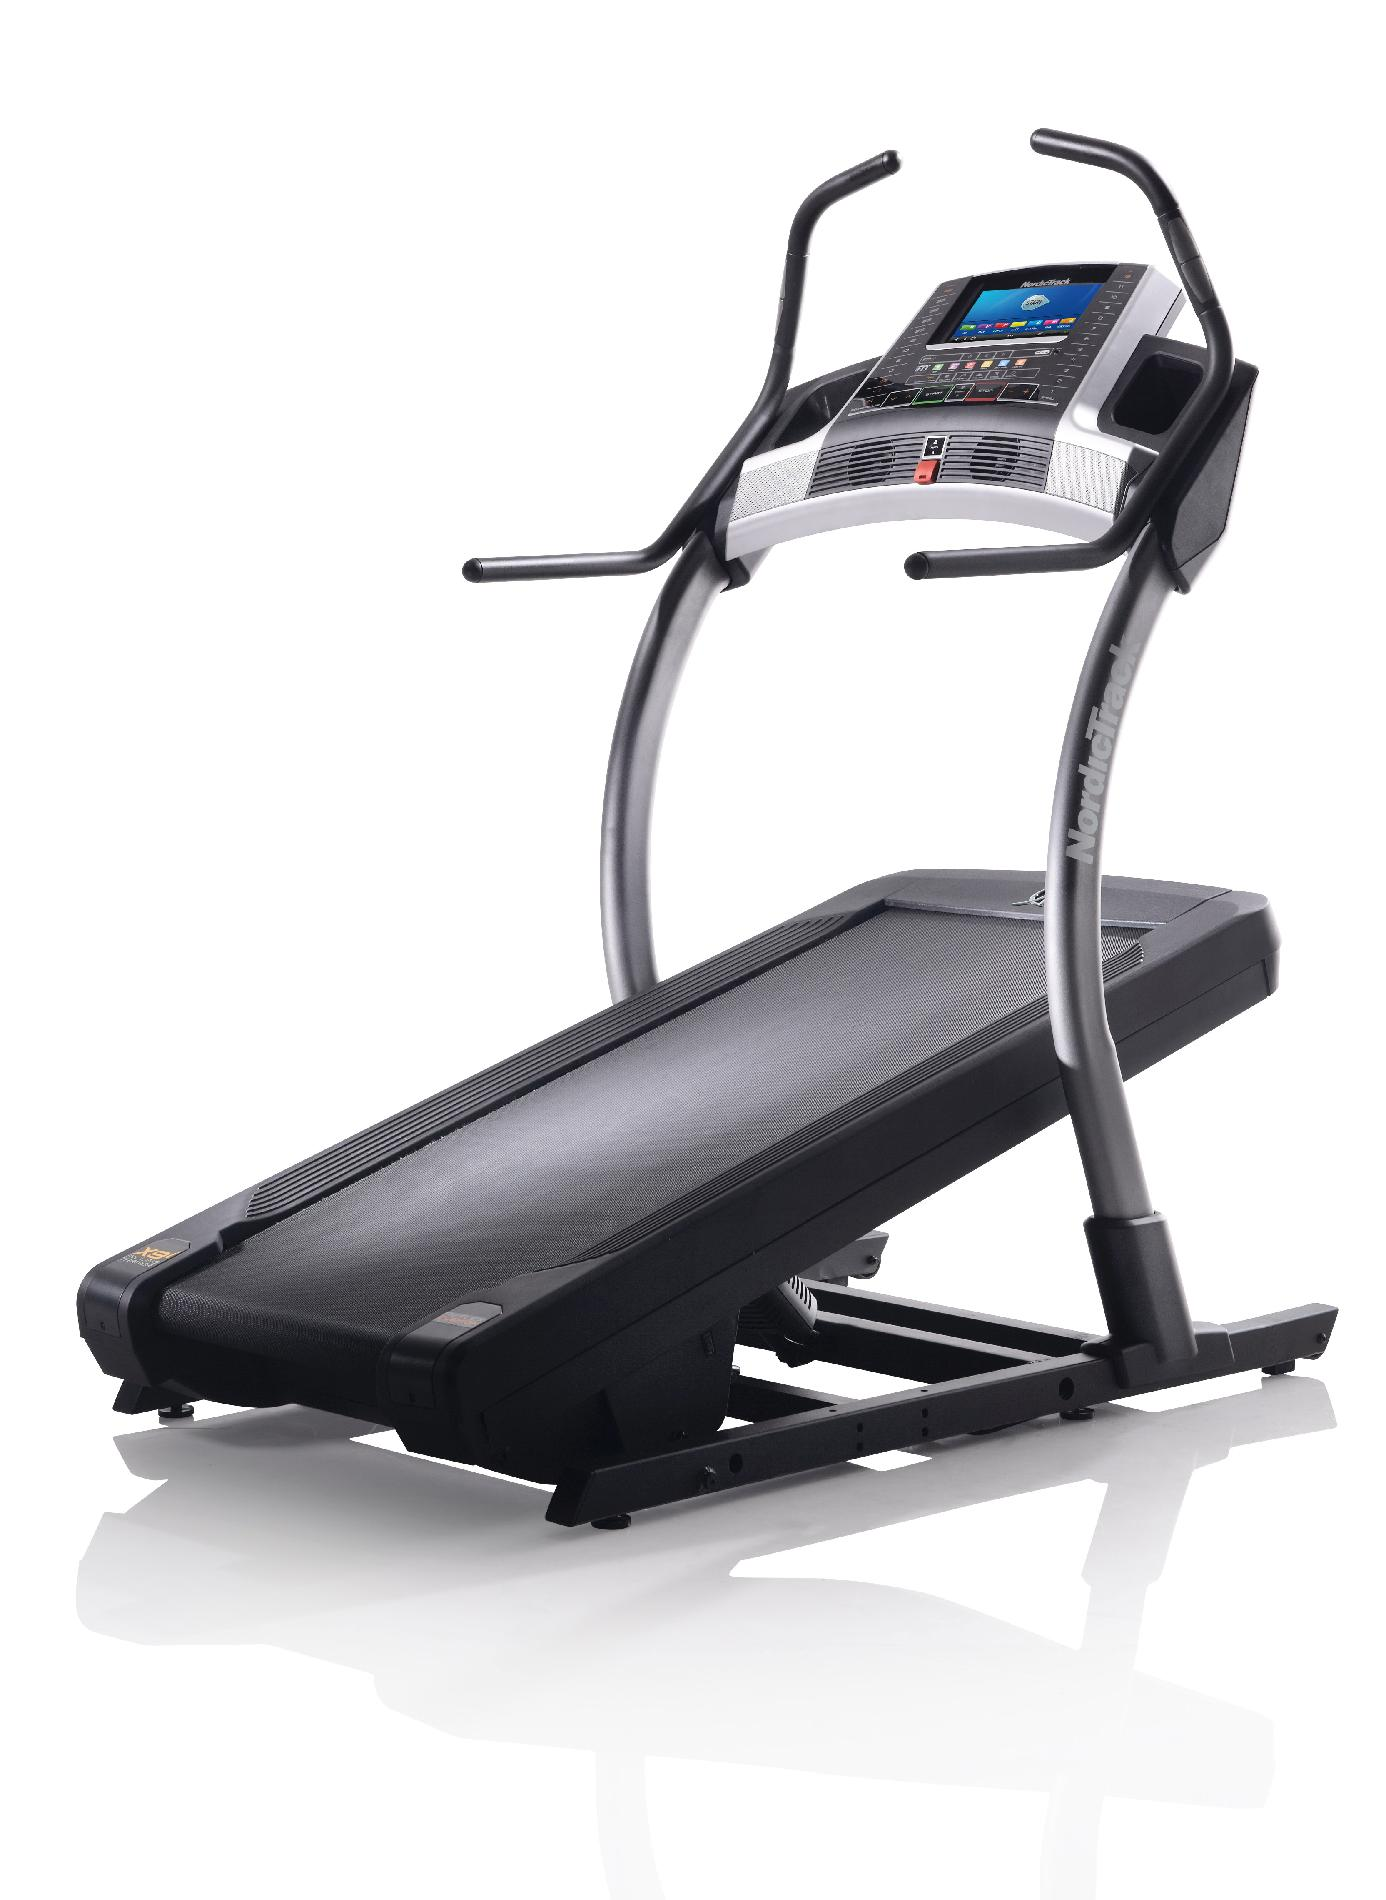 NordicTrack X9I Incline Trainer Treadmill- 2013 Model